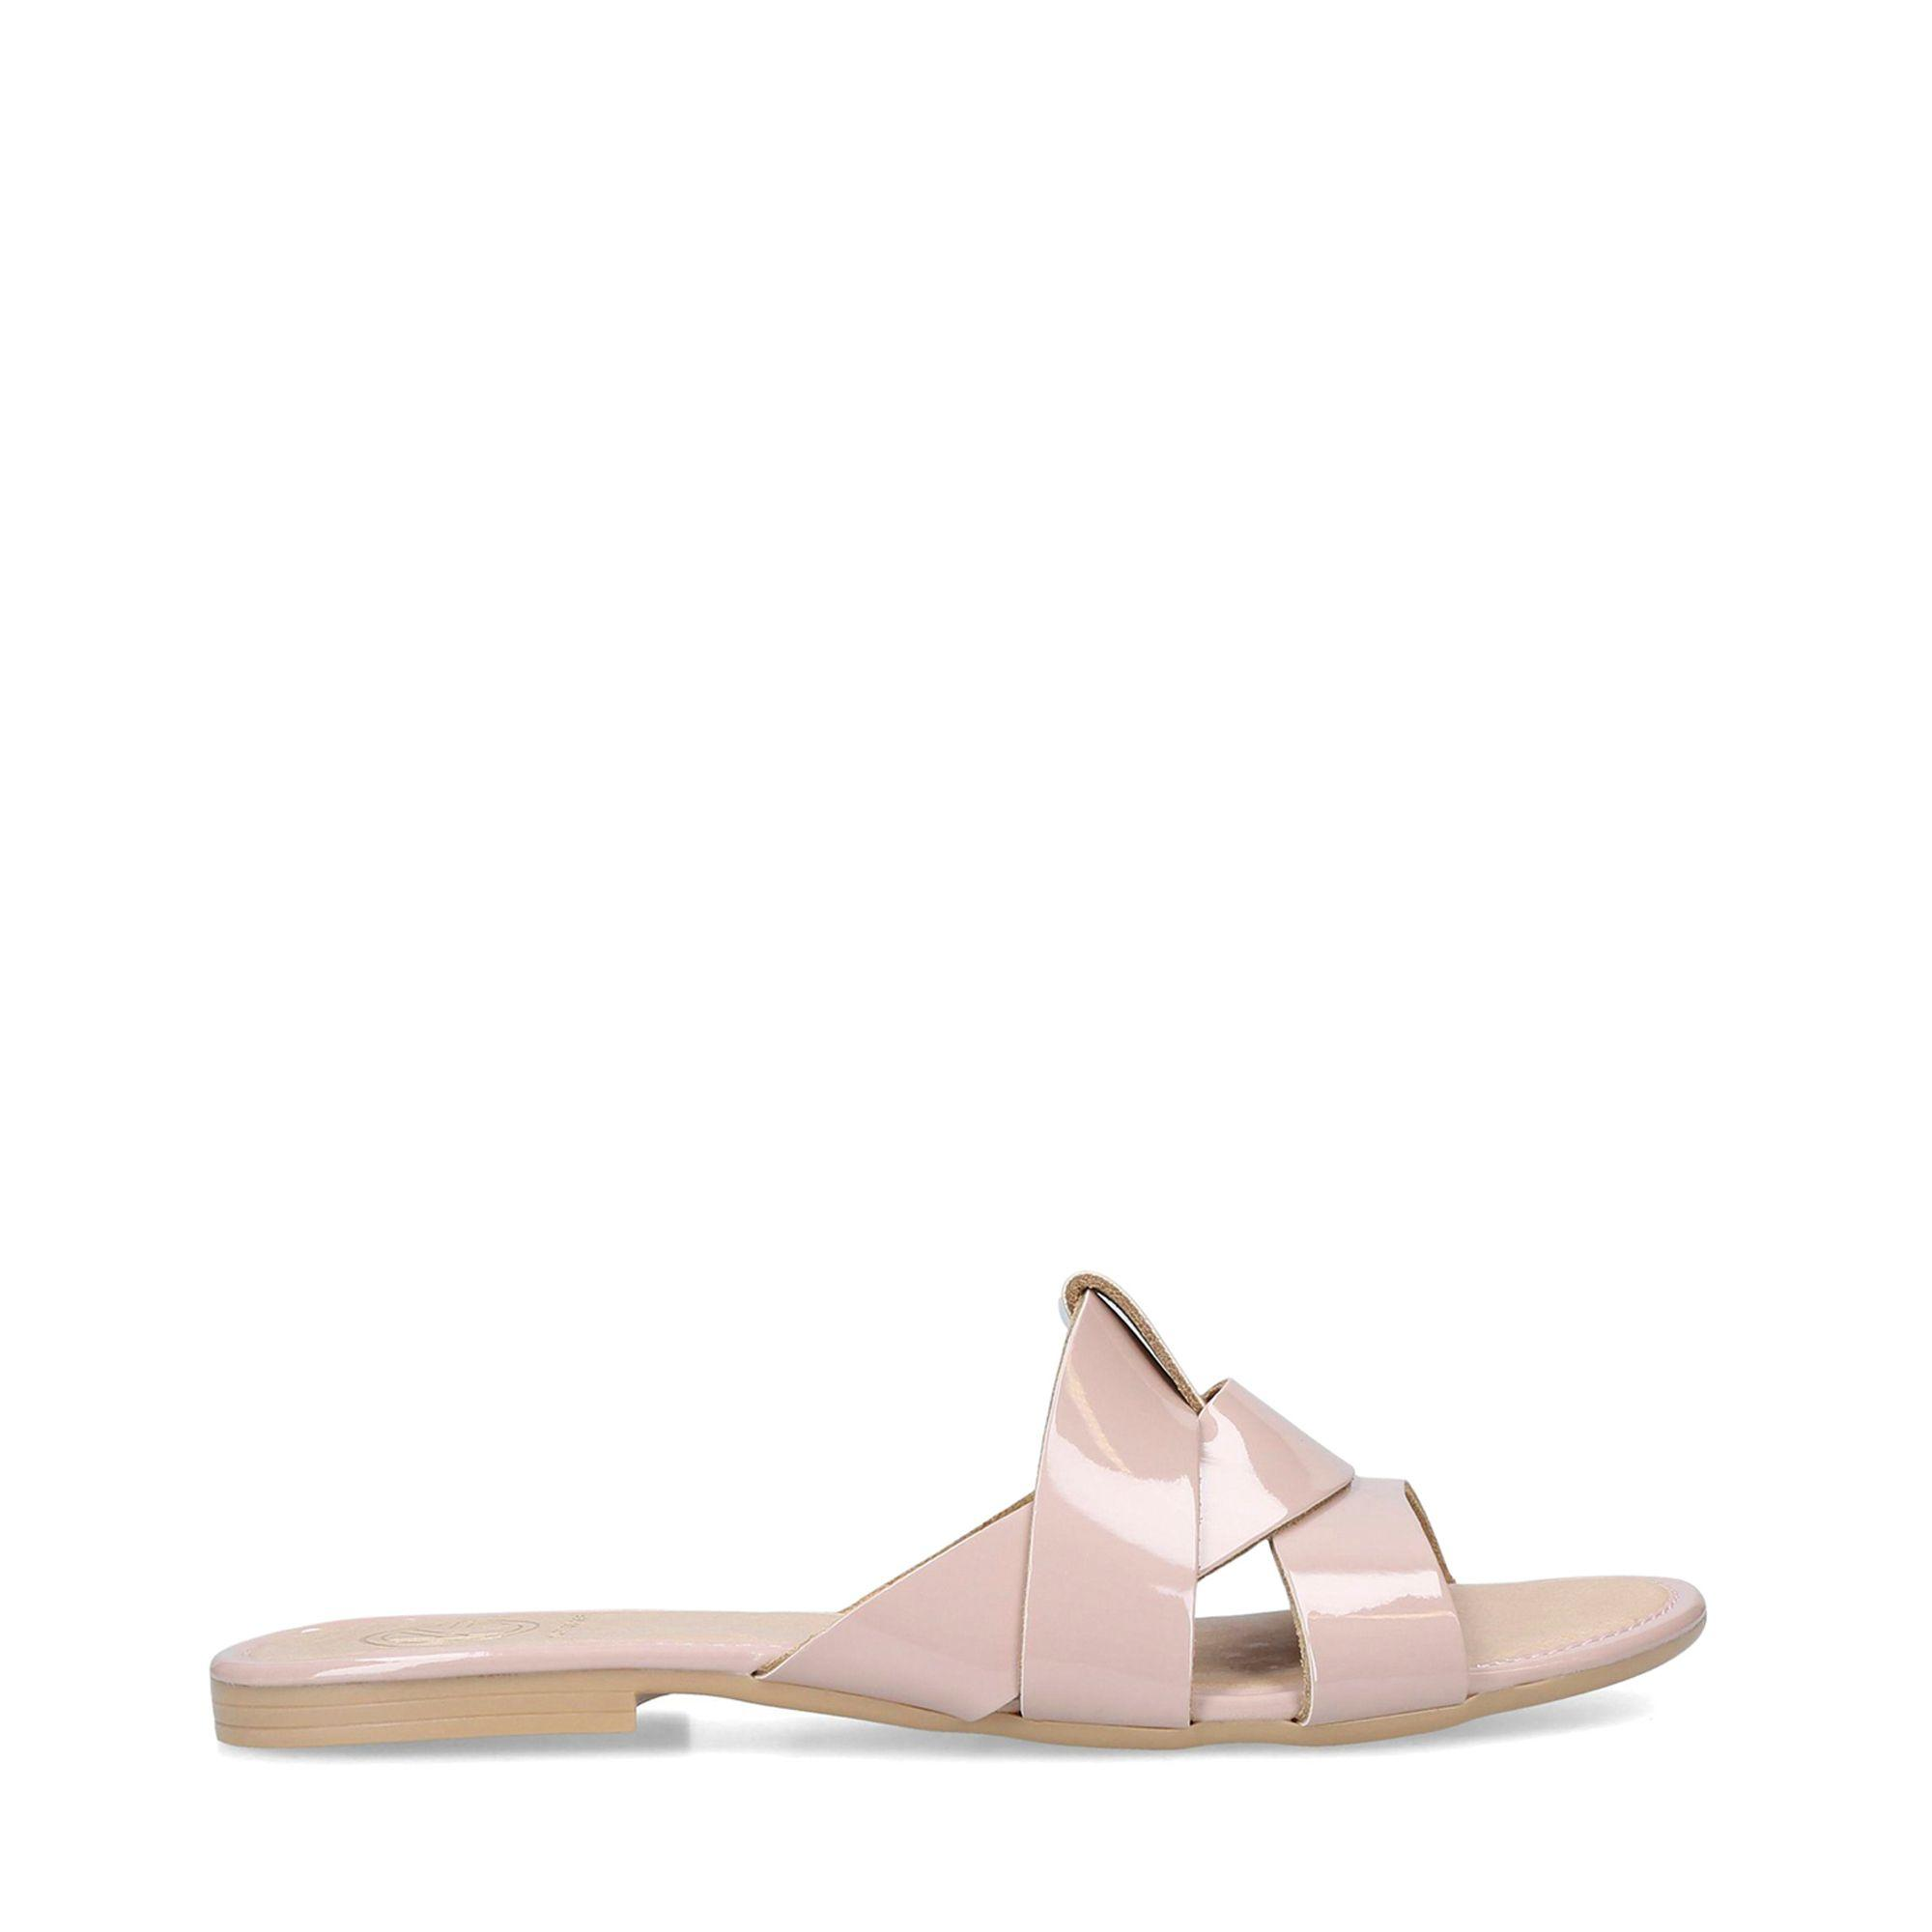 KG by Kurt Geiger Match Sandals in Nude (Natural) - Lyst